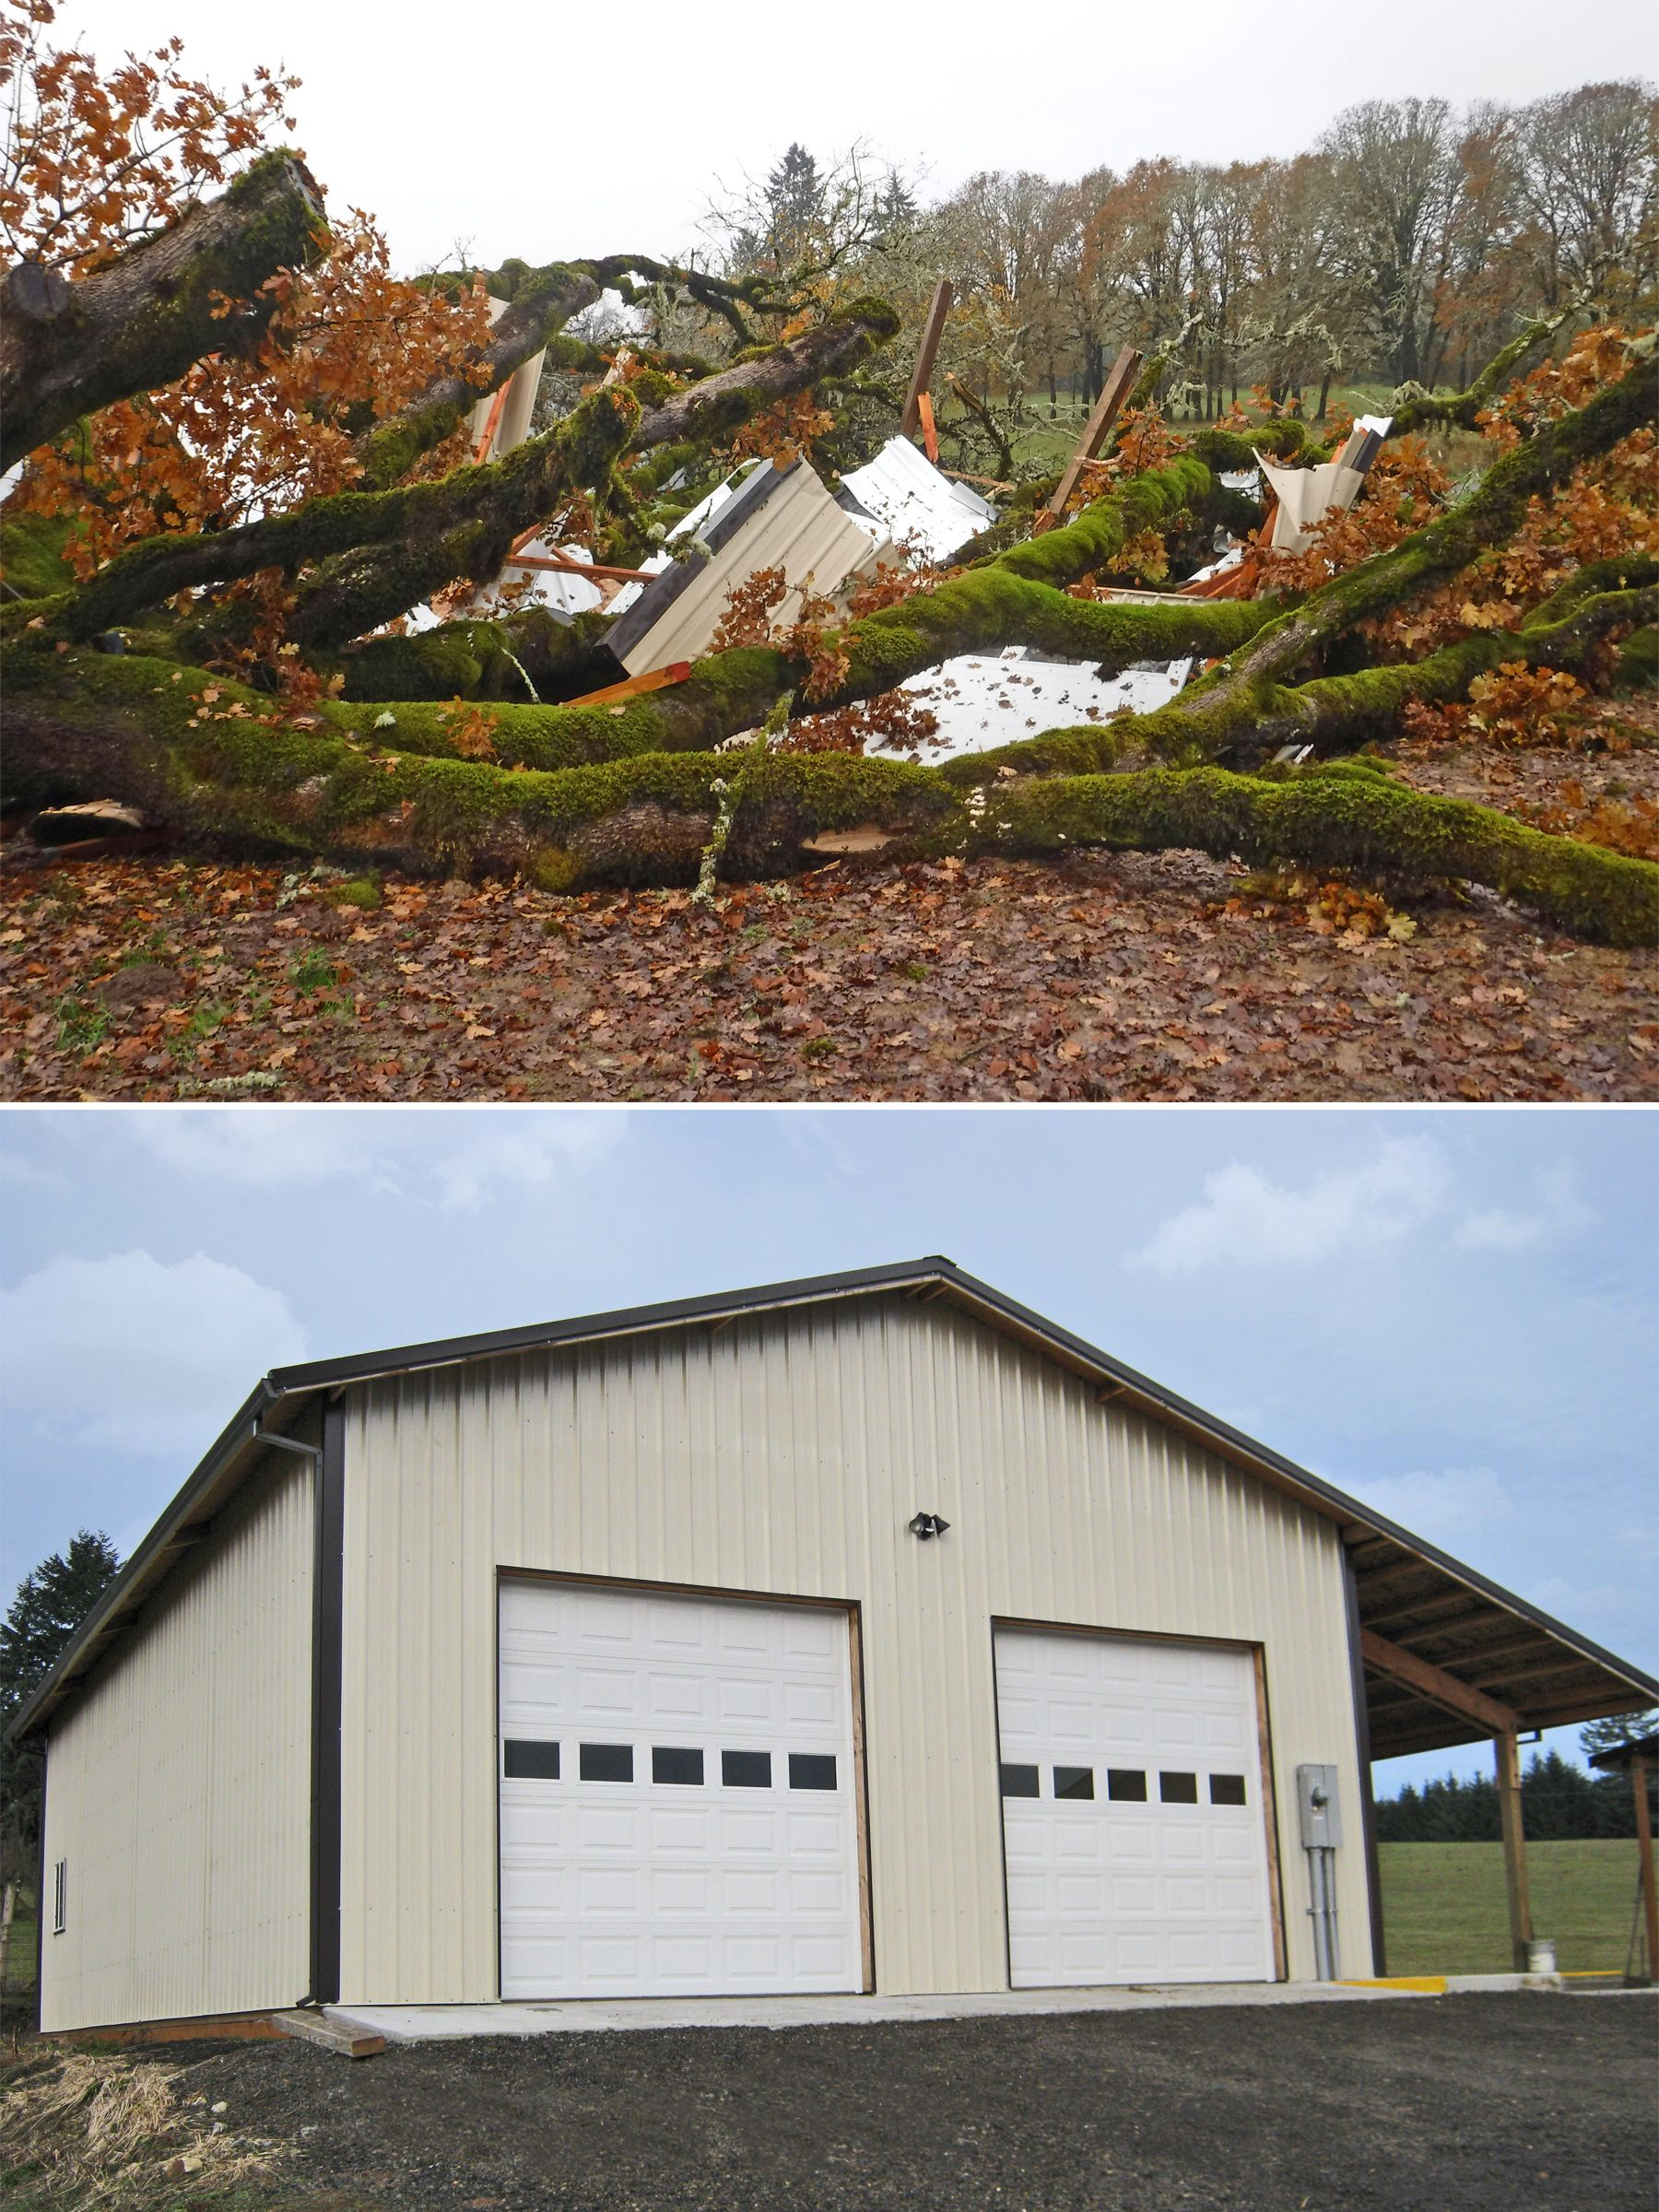 hight resolution of before and after shot of a 32 x 48 x 14 agricultural building that was destroyed by a falling tree www econofabbuildings com